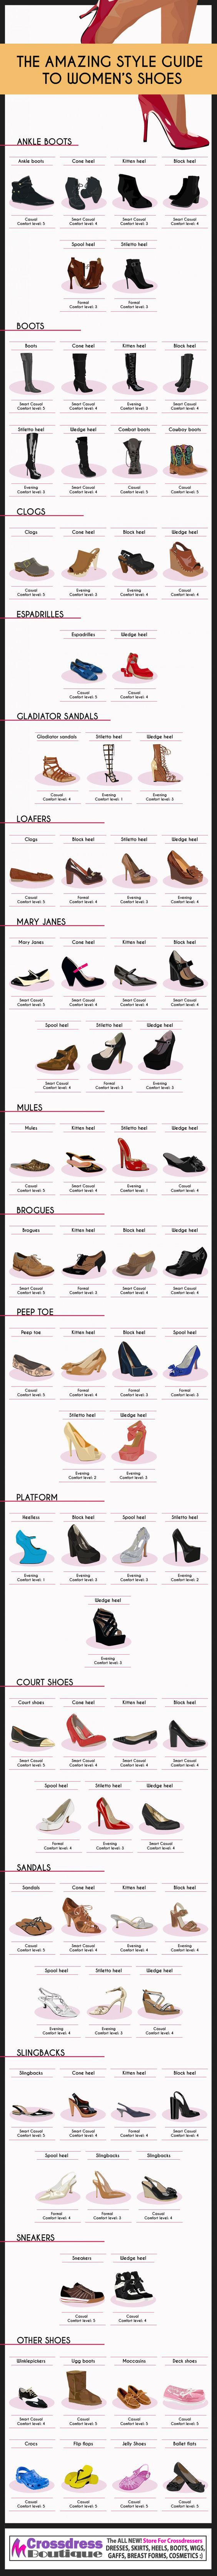 The crossdresser style guide to all types of footwear. http://www.crossdressboutique.com/tgirl/shoes-boots-hosiery/